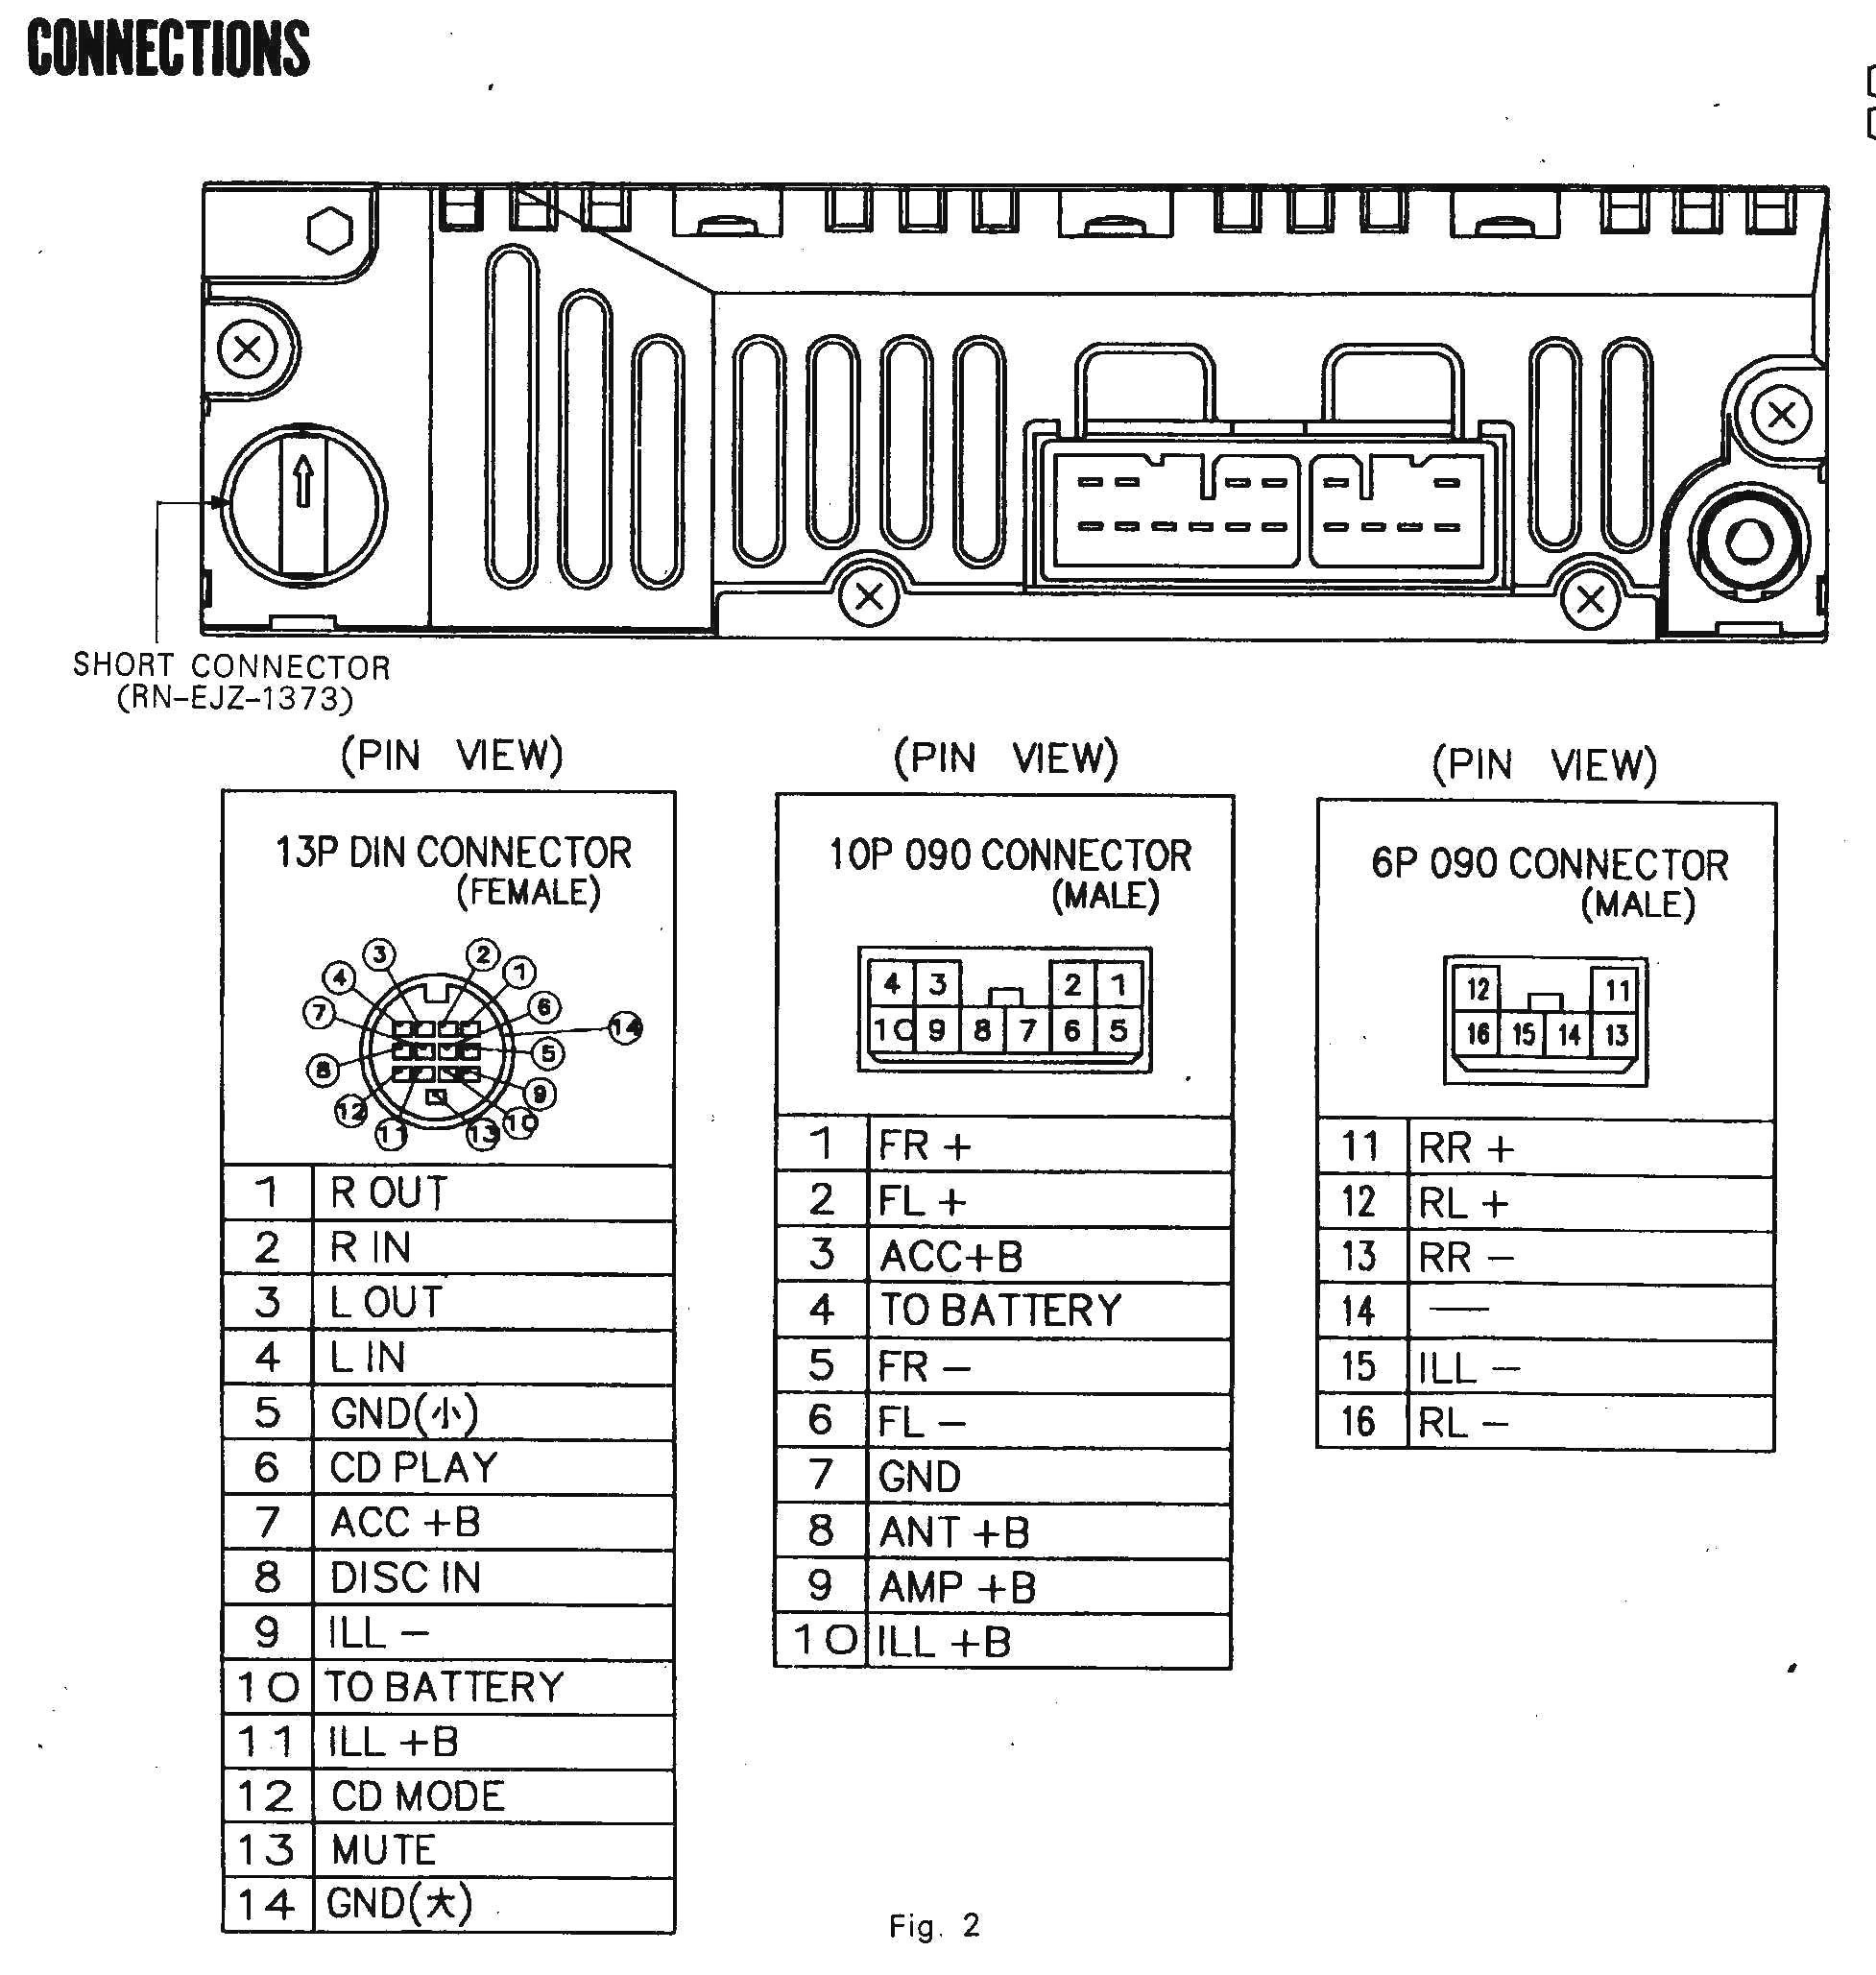 Xb 8949 Sony Car Stereo Wiring Diagram Together With Sony Car Stereo Cdx Free Diagram